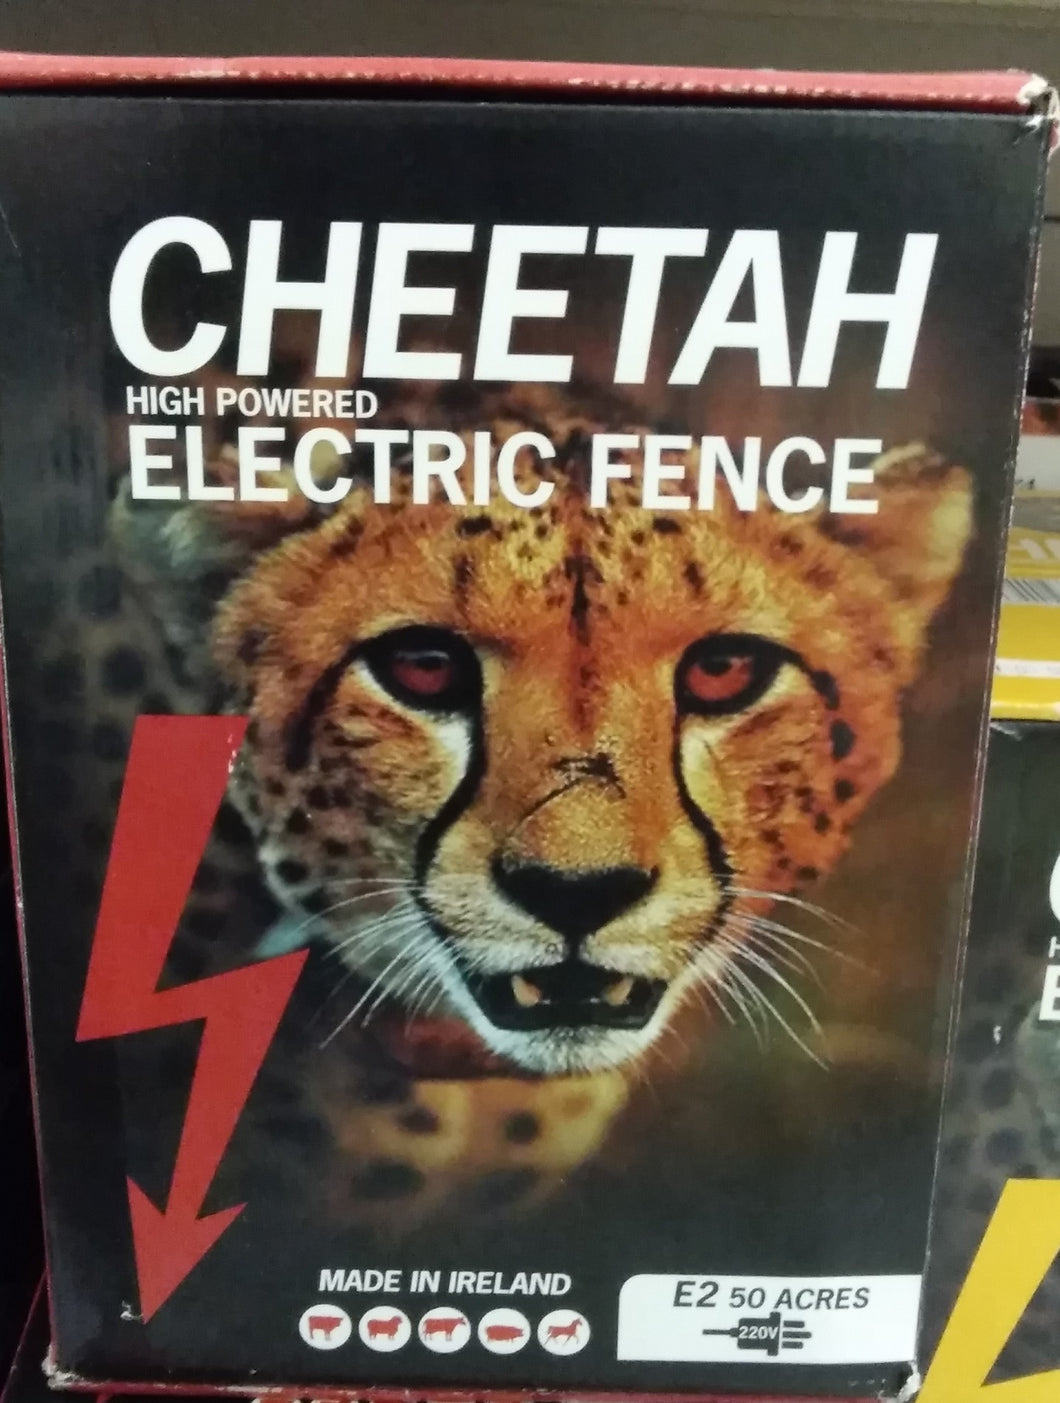 Cheetah High Powered Electric Fence - E2 50 Acres